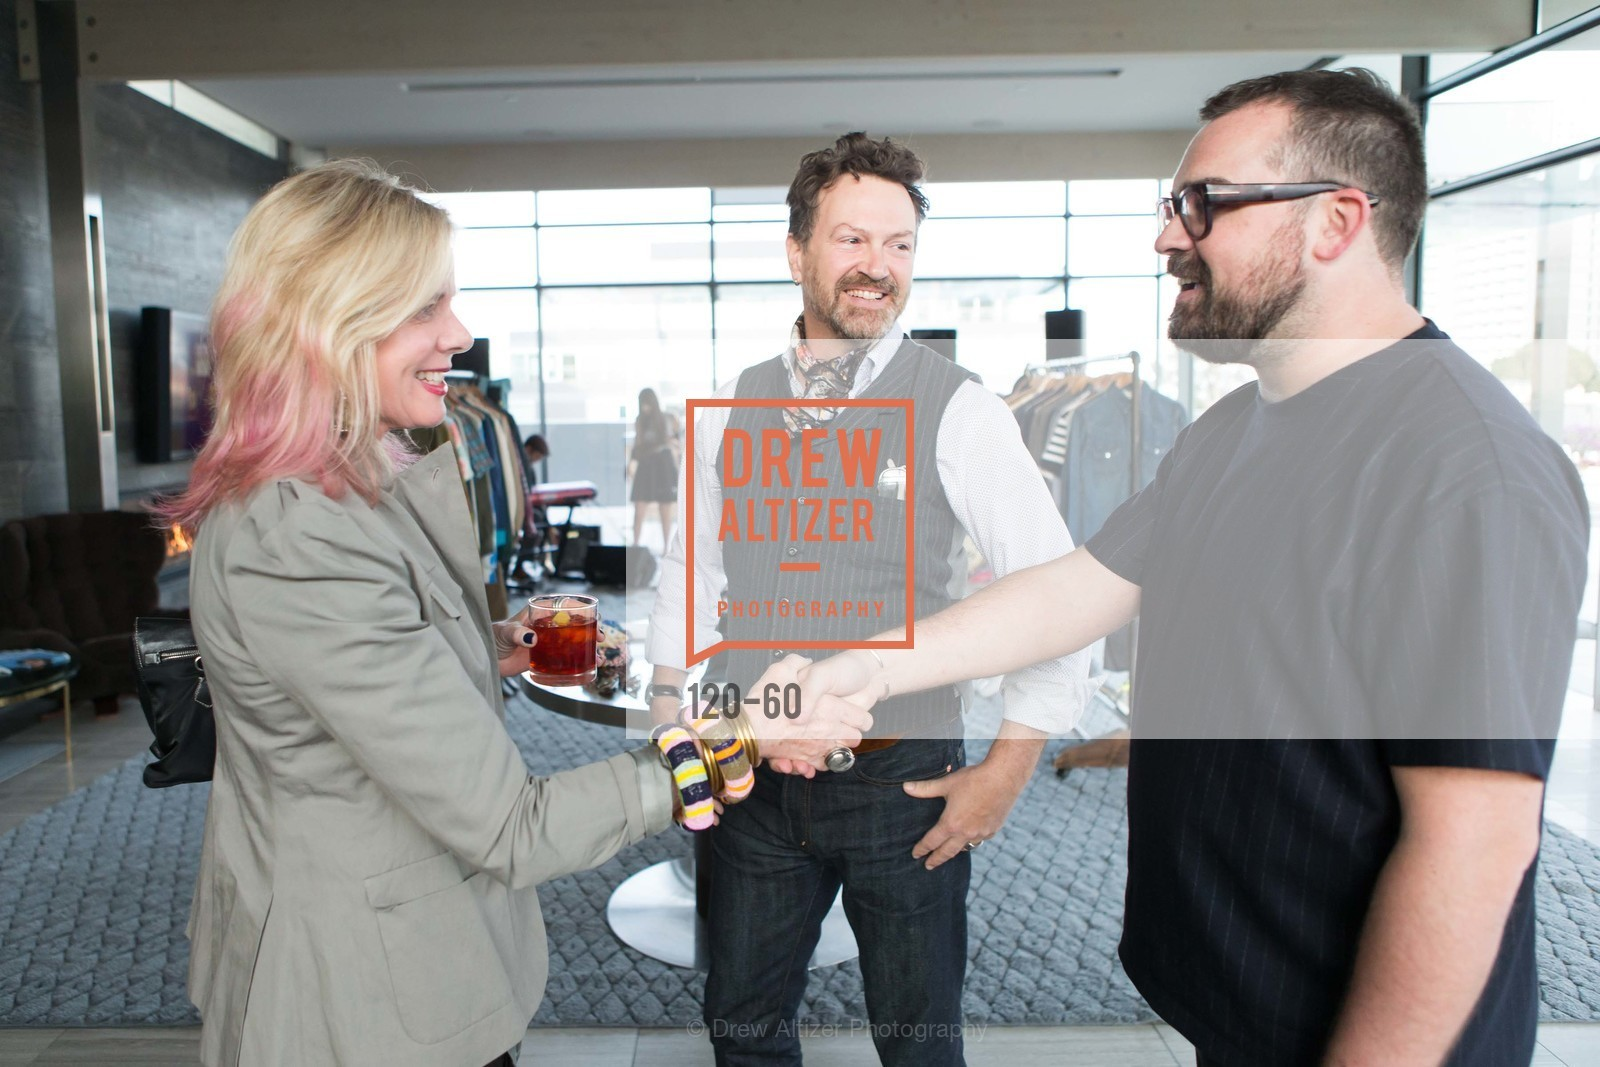 Susan McLaughlin, Paul D'Orleans, Andrew Lord, MR PORTER Celebrate The San Francisco Issue of The Journal, The Battery Rooftop - The Battery SF, April 23rd, 2015,Drew Altizer, Drew Altizer Photography, full-service event agency, private events, San Francisco photographer, photographer California